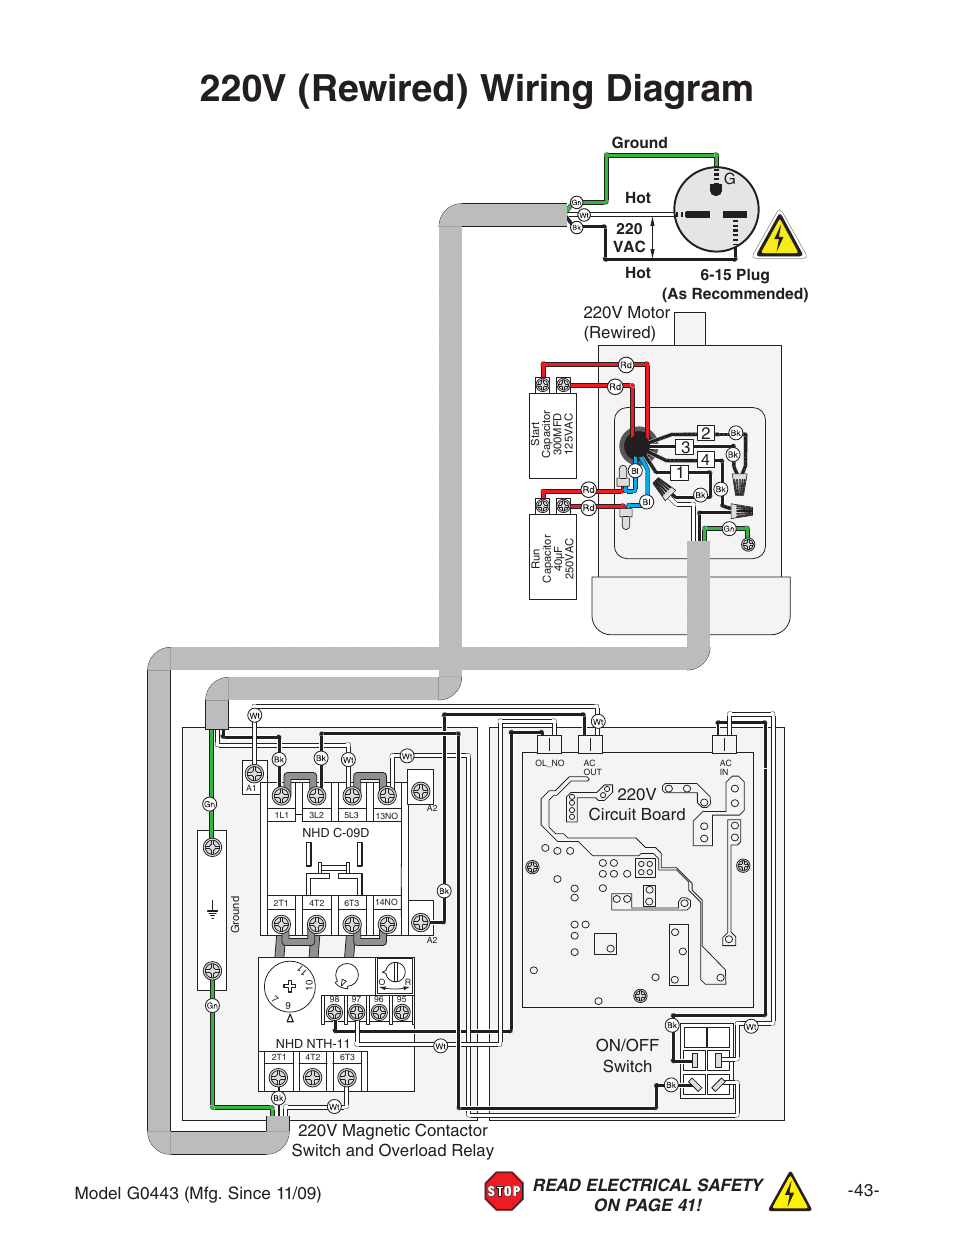 220v Rewired Wiring Diagram On Off Switch Grizzly G0440 User 220 Vac Manual